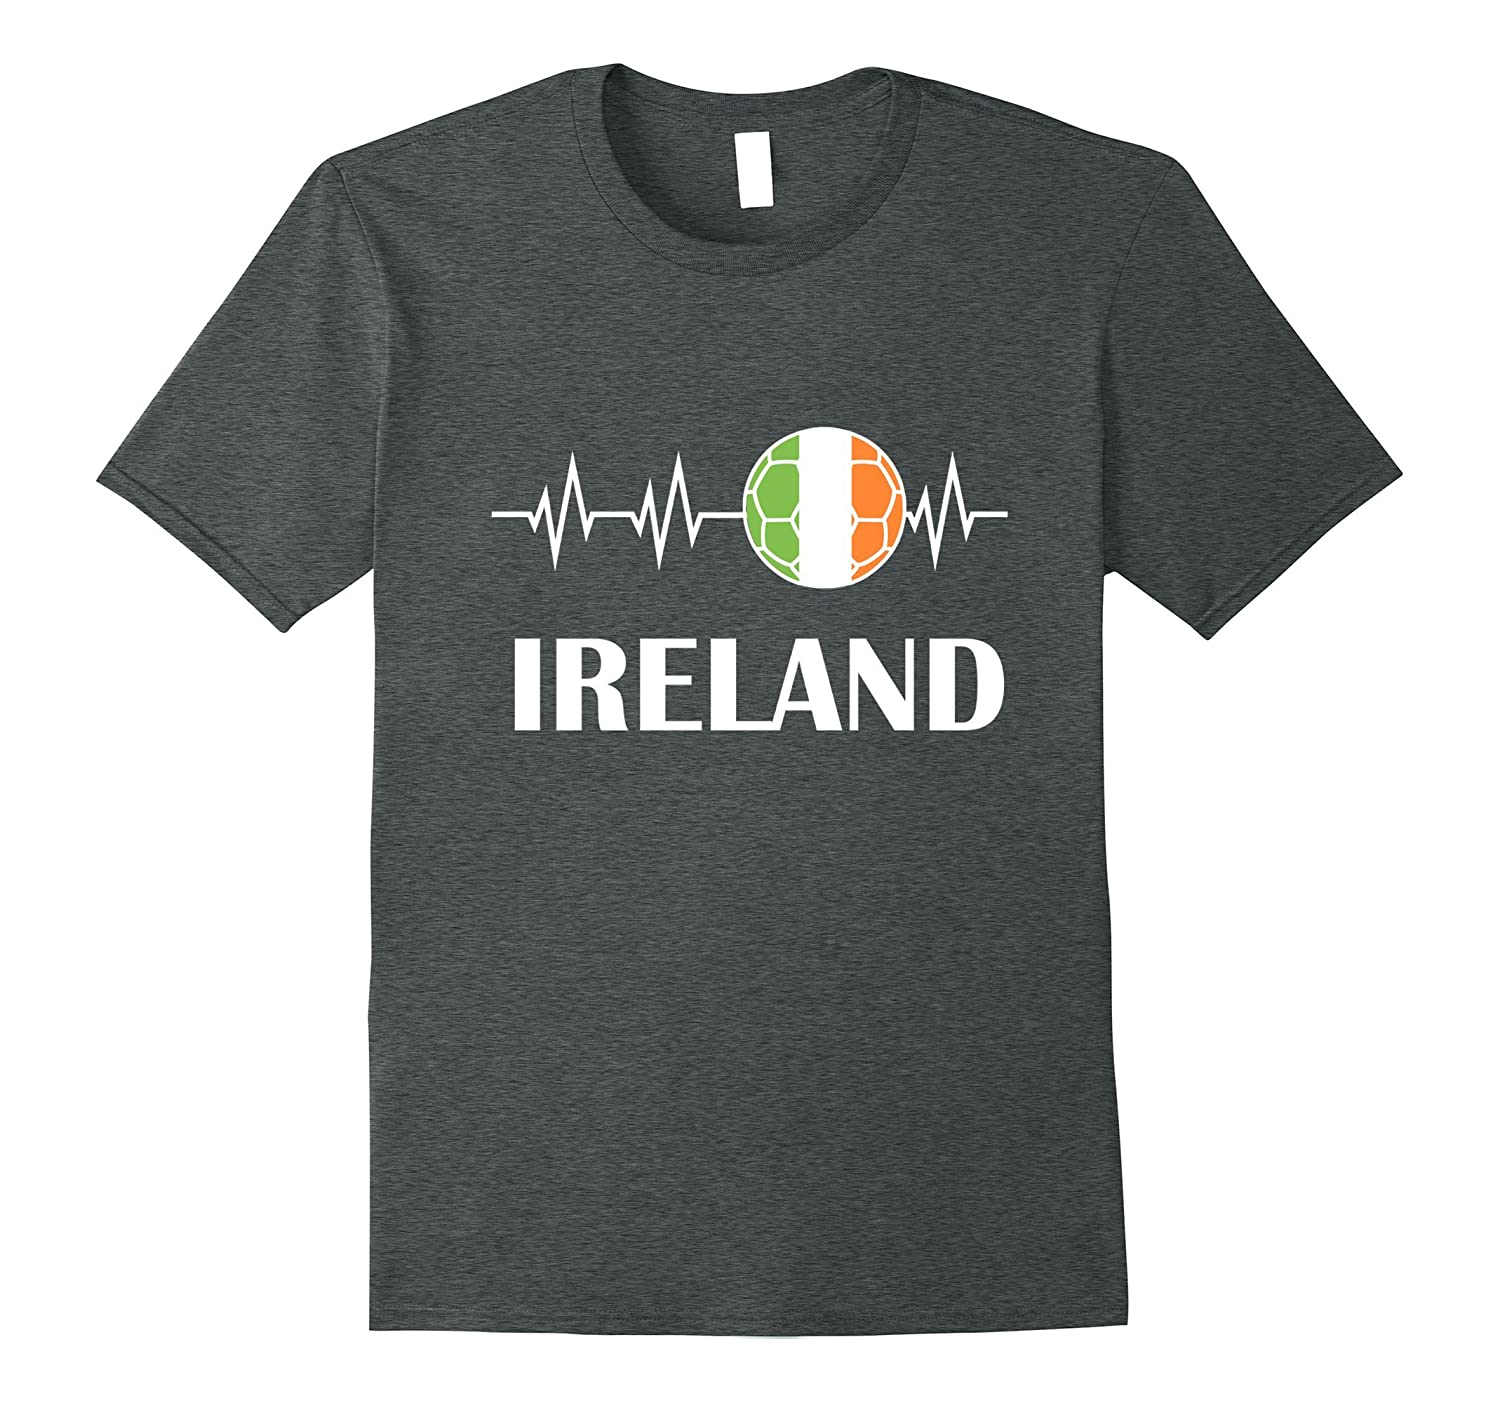 Soccer Heartbeat T-Shirt I Love Ireland Flag Futbol Shirt-Loveshirt